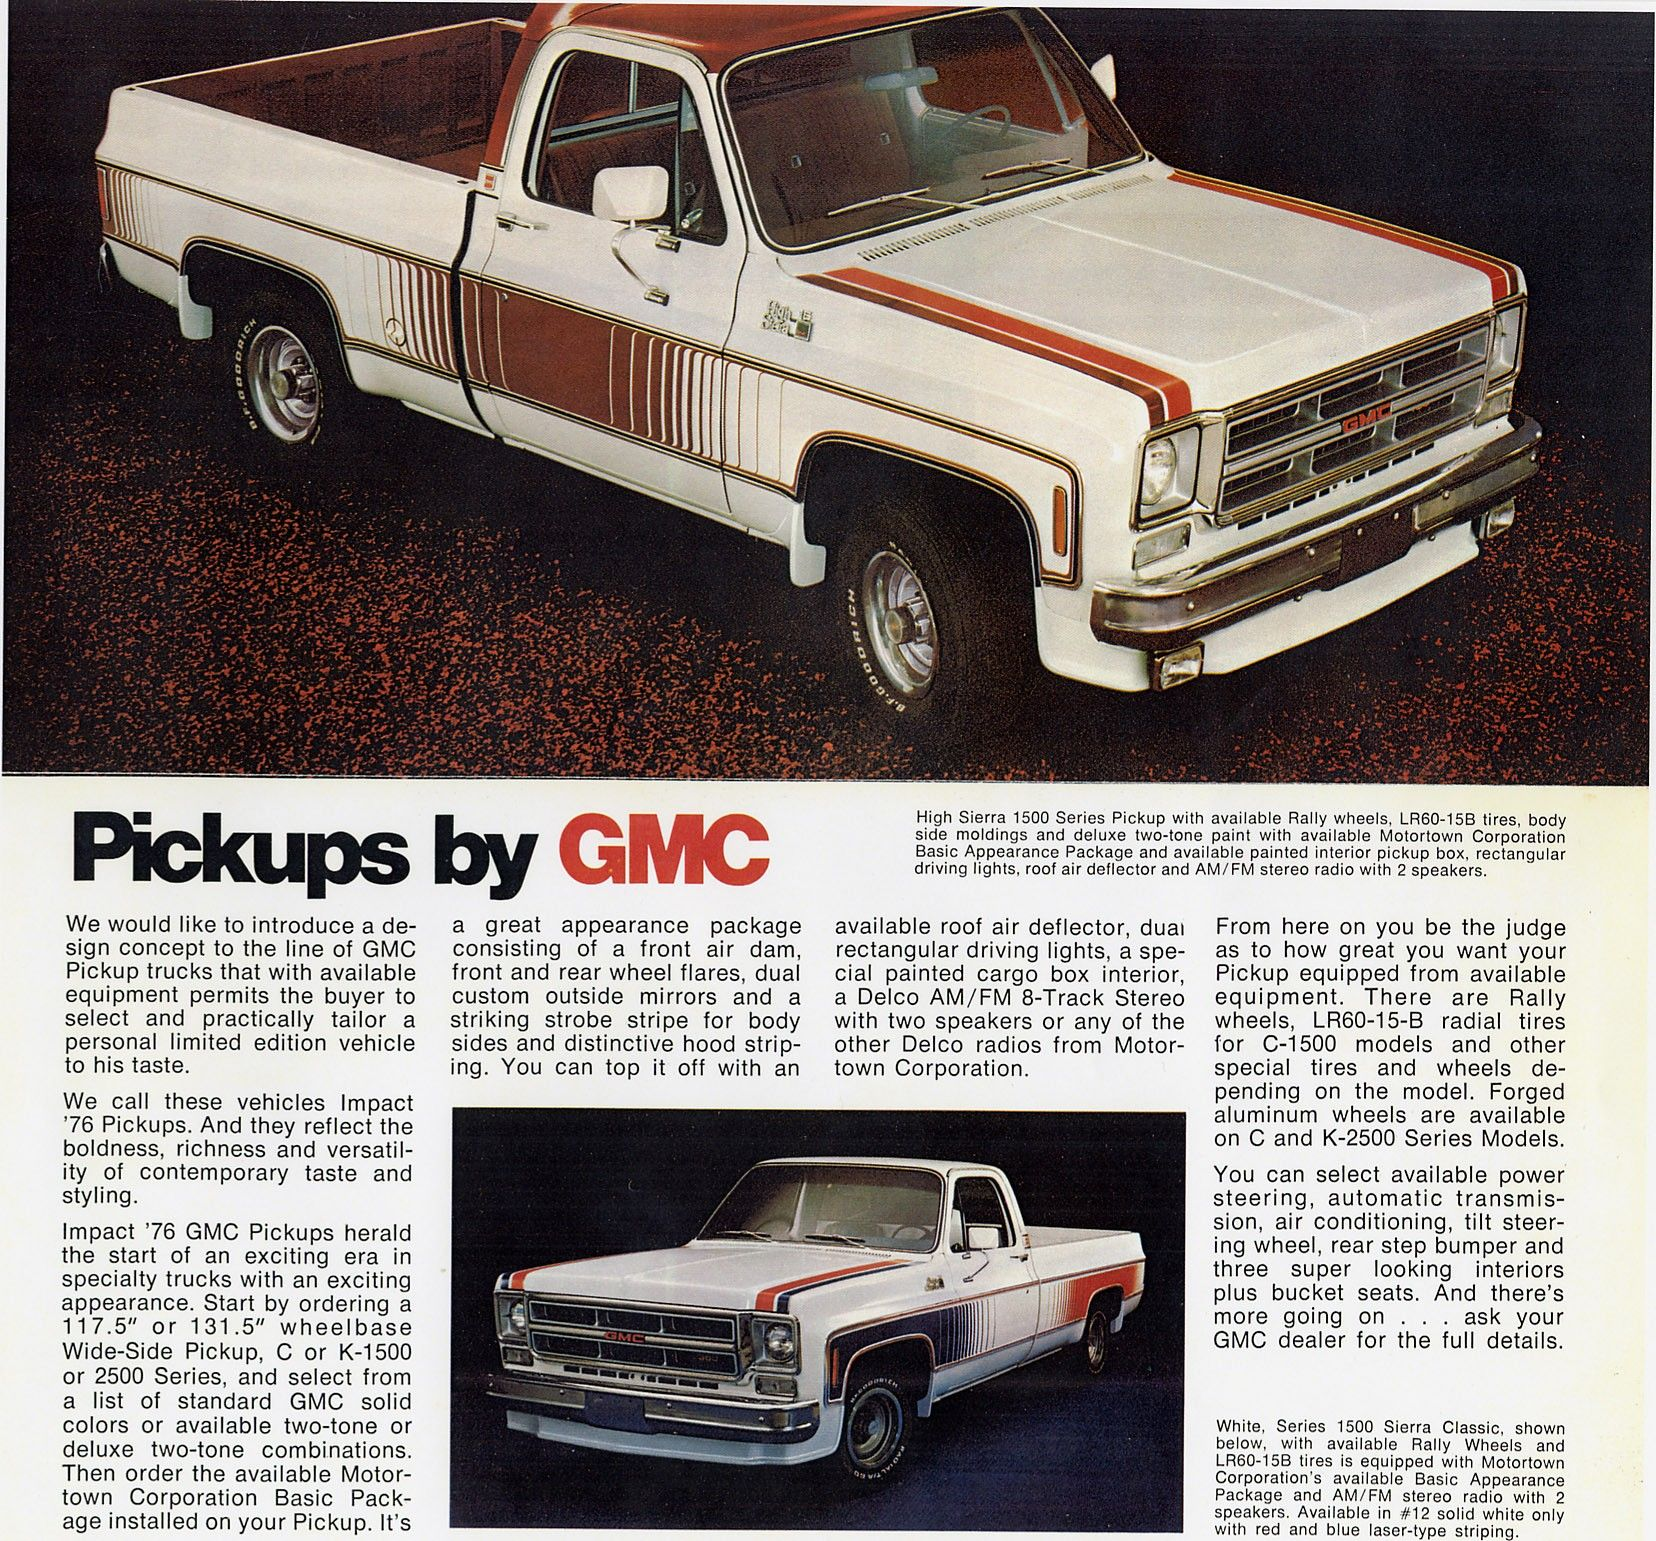 1976 Gmc Impact Speciality Package Trucks Pickup Car Trucks